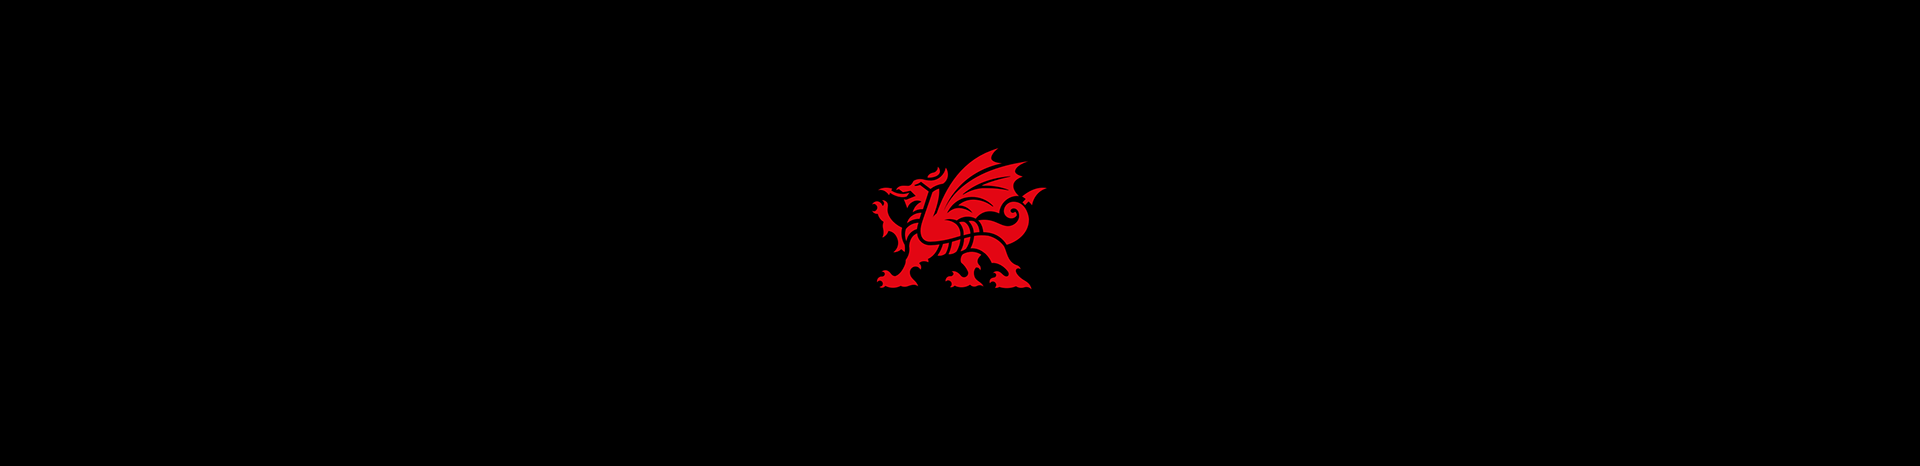 A red dragon. The logotype of the Welsh Government.